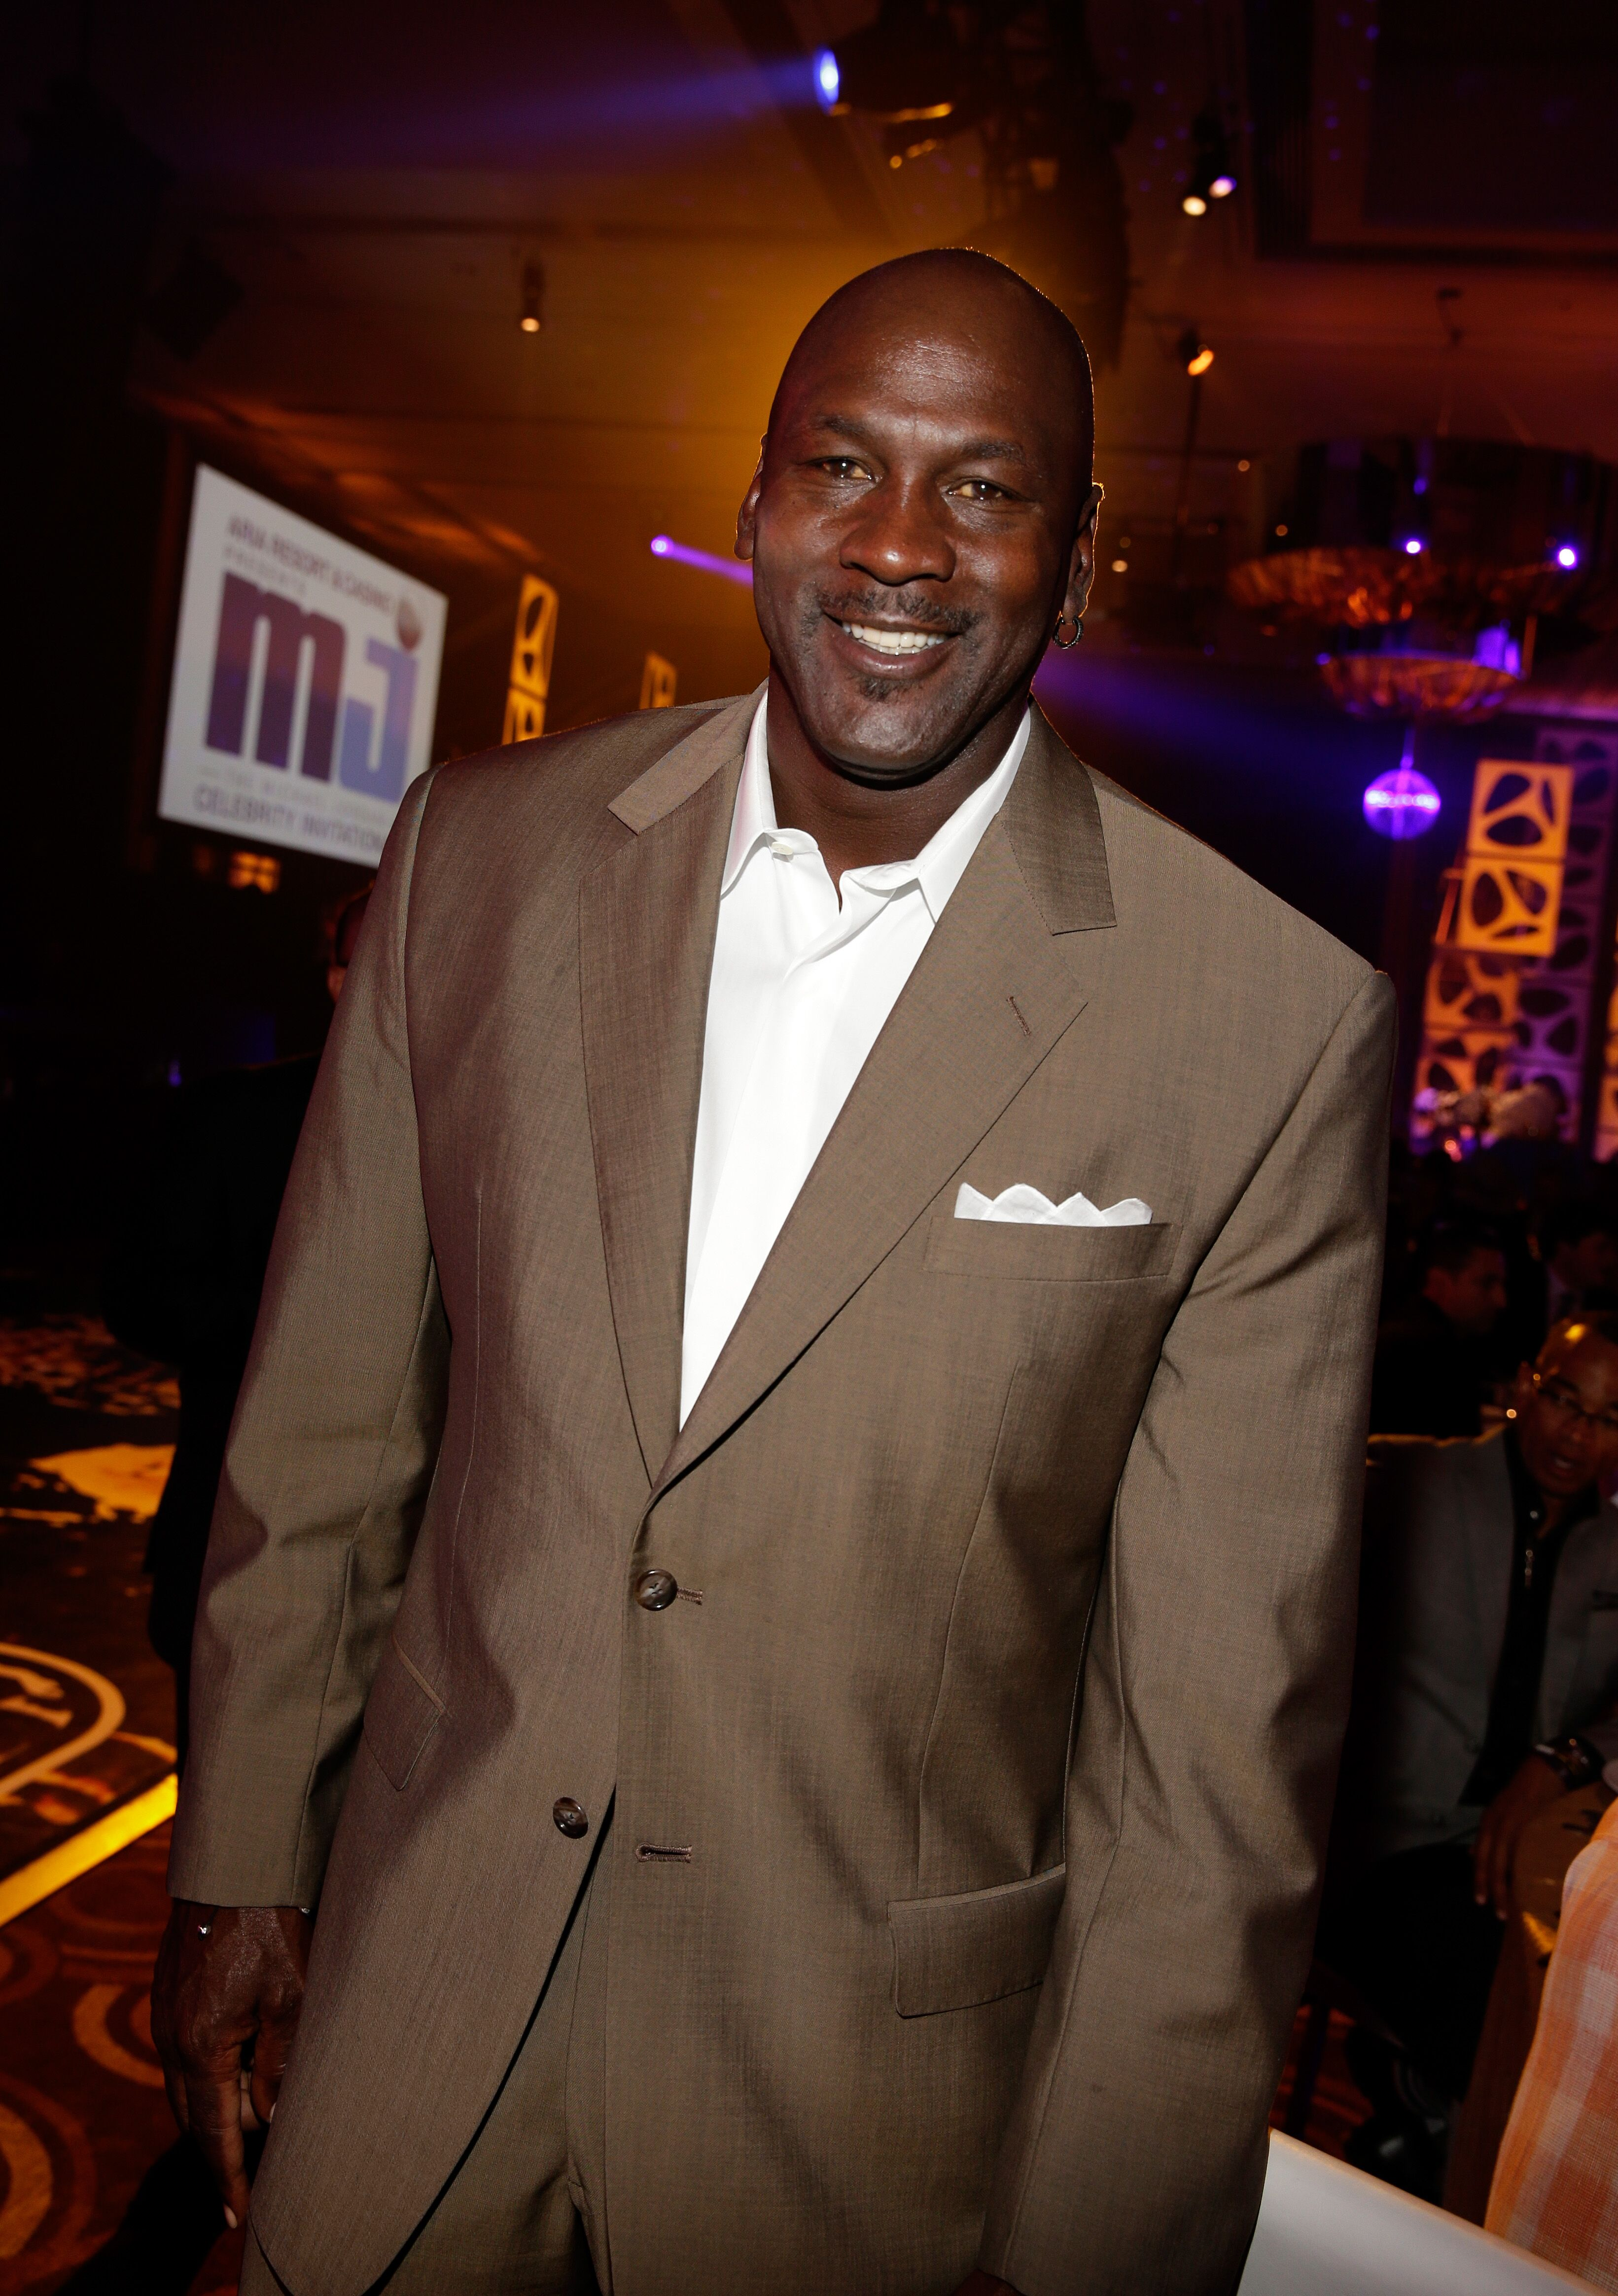 Michael Jordan attends the 13th annual Michael Jordan Celebrity Invitational gala. | Source: Getty Images